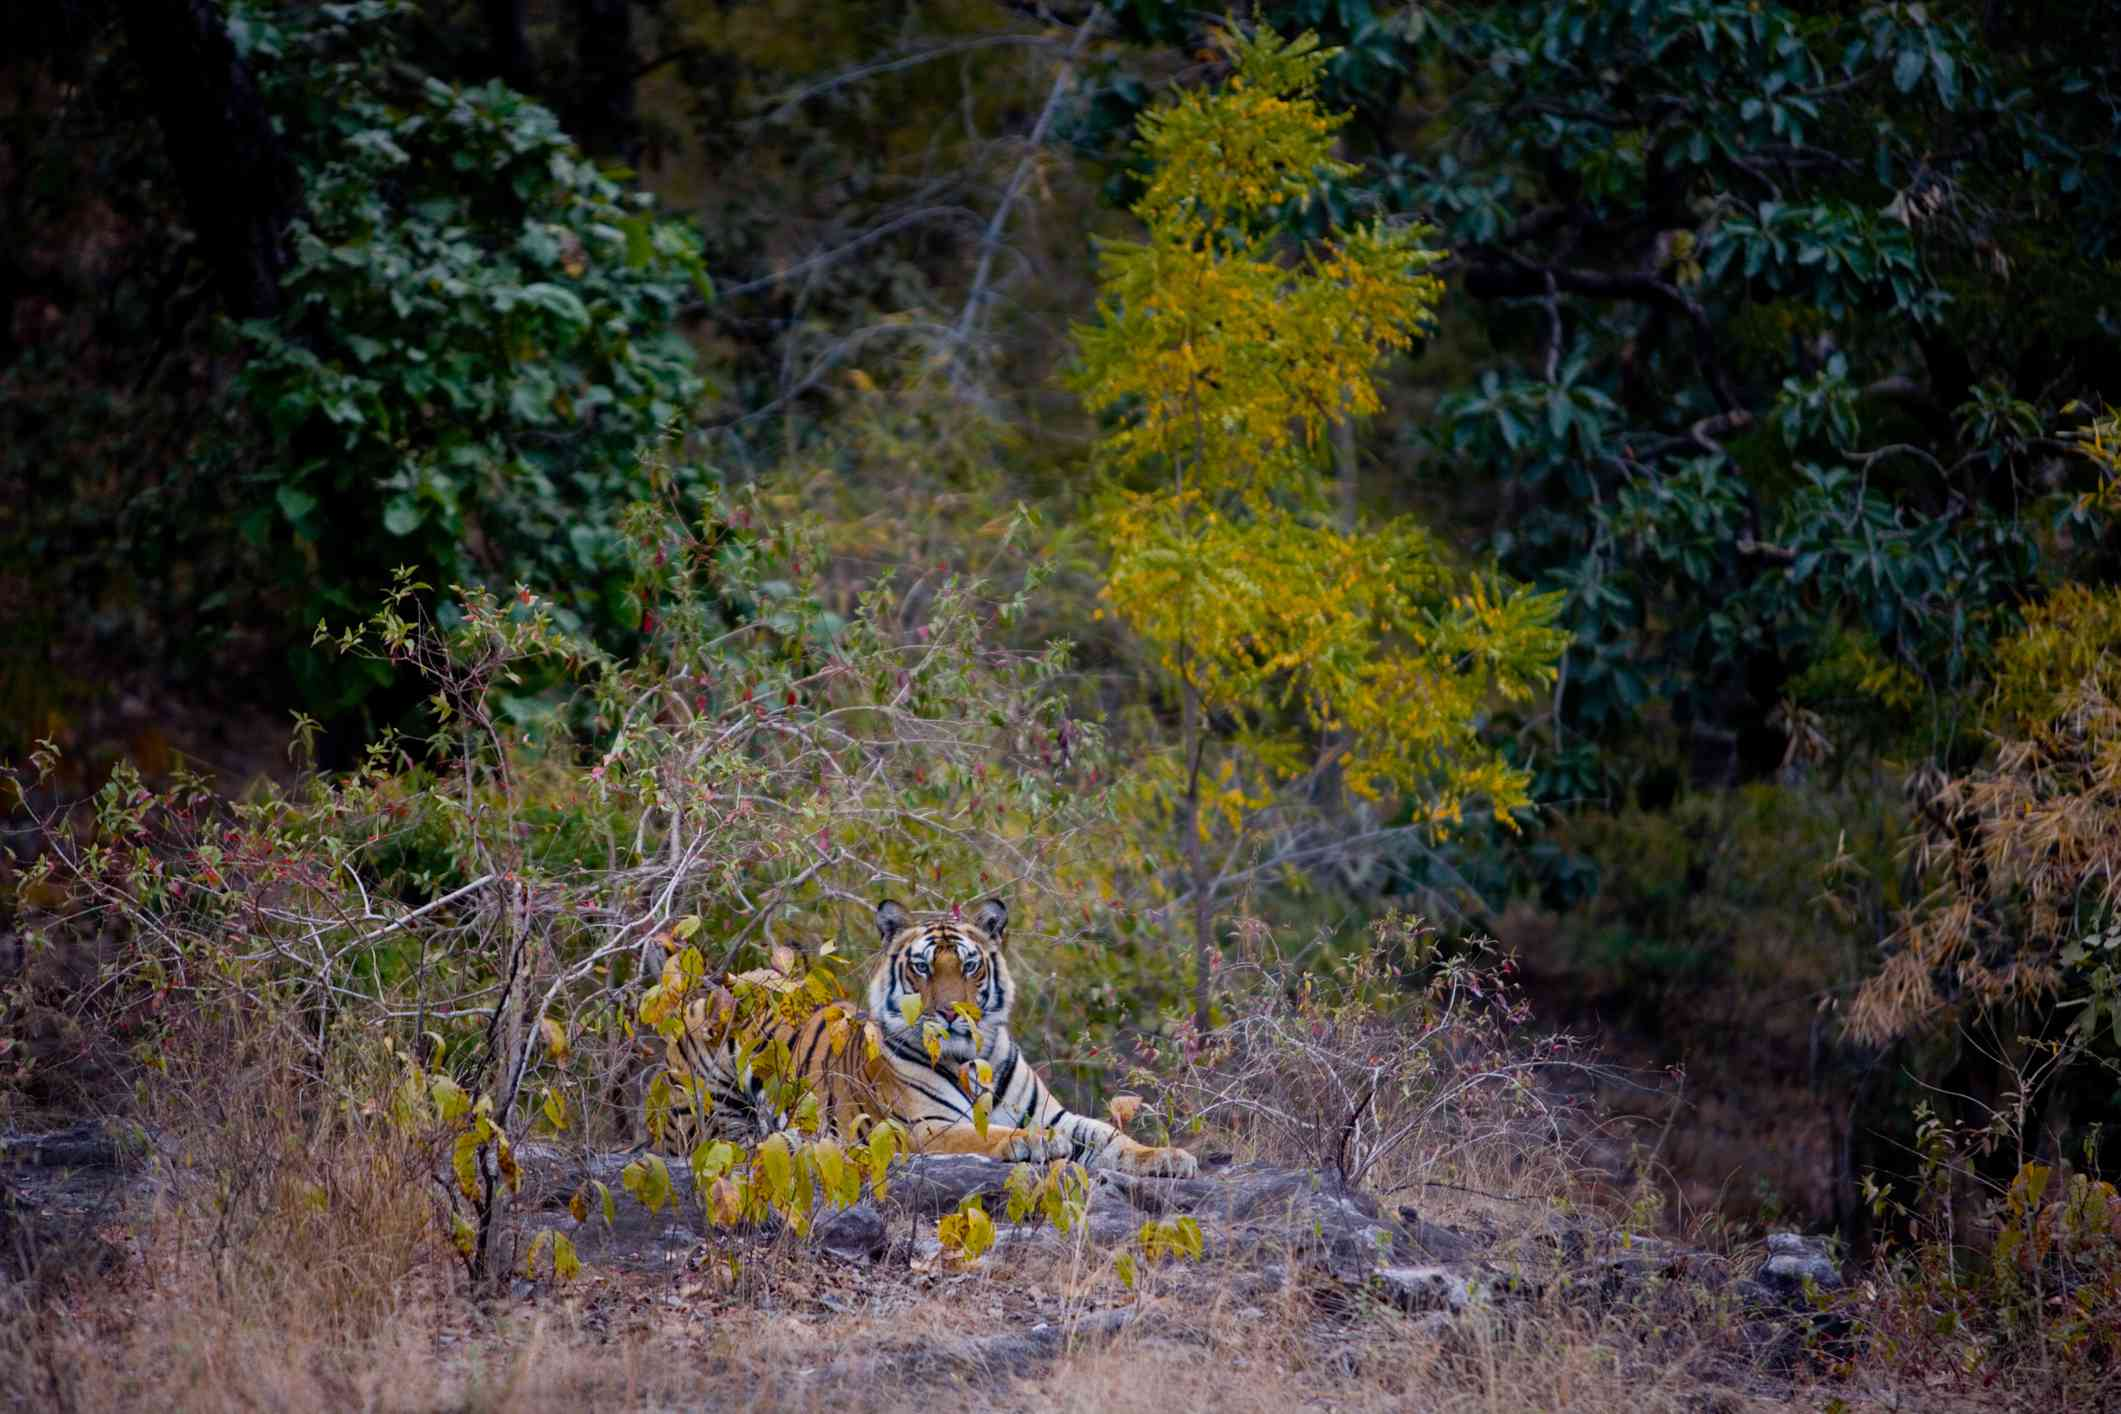 A tiger inside a national park reserve in India